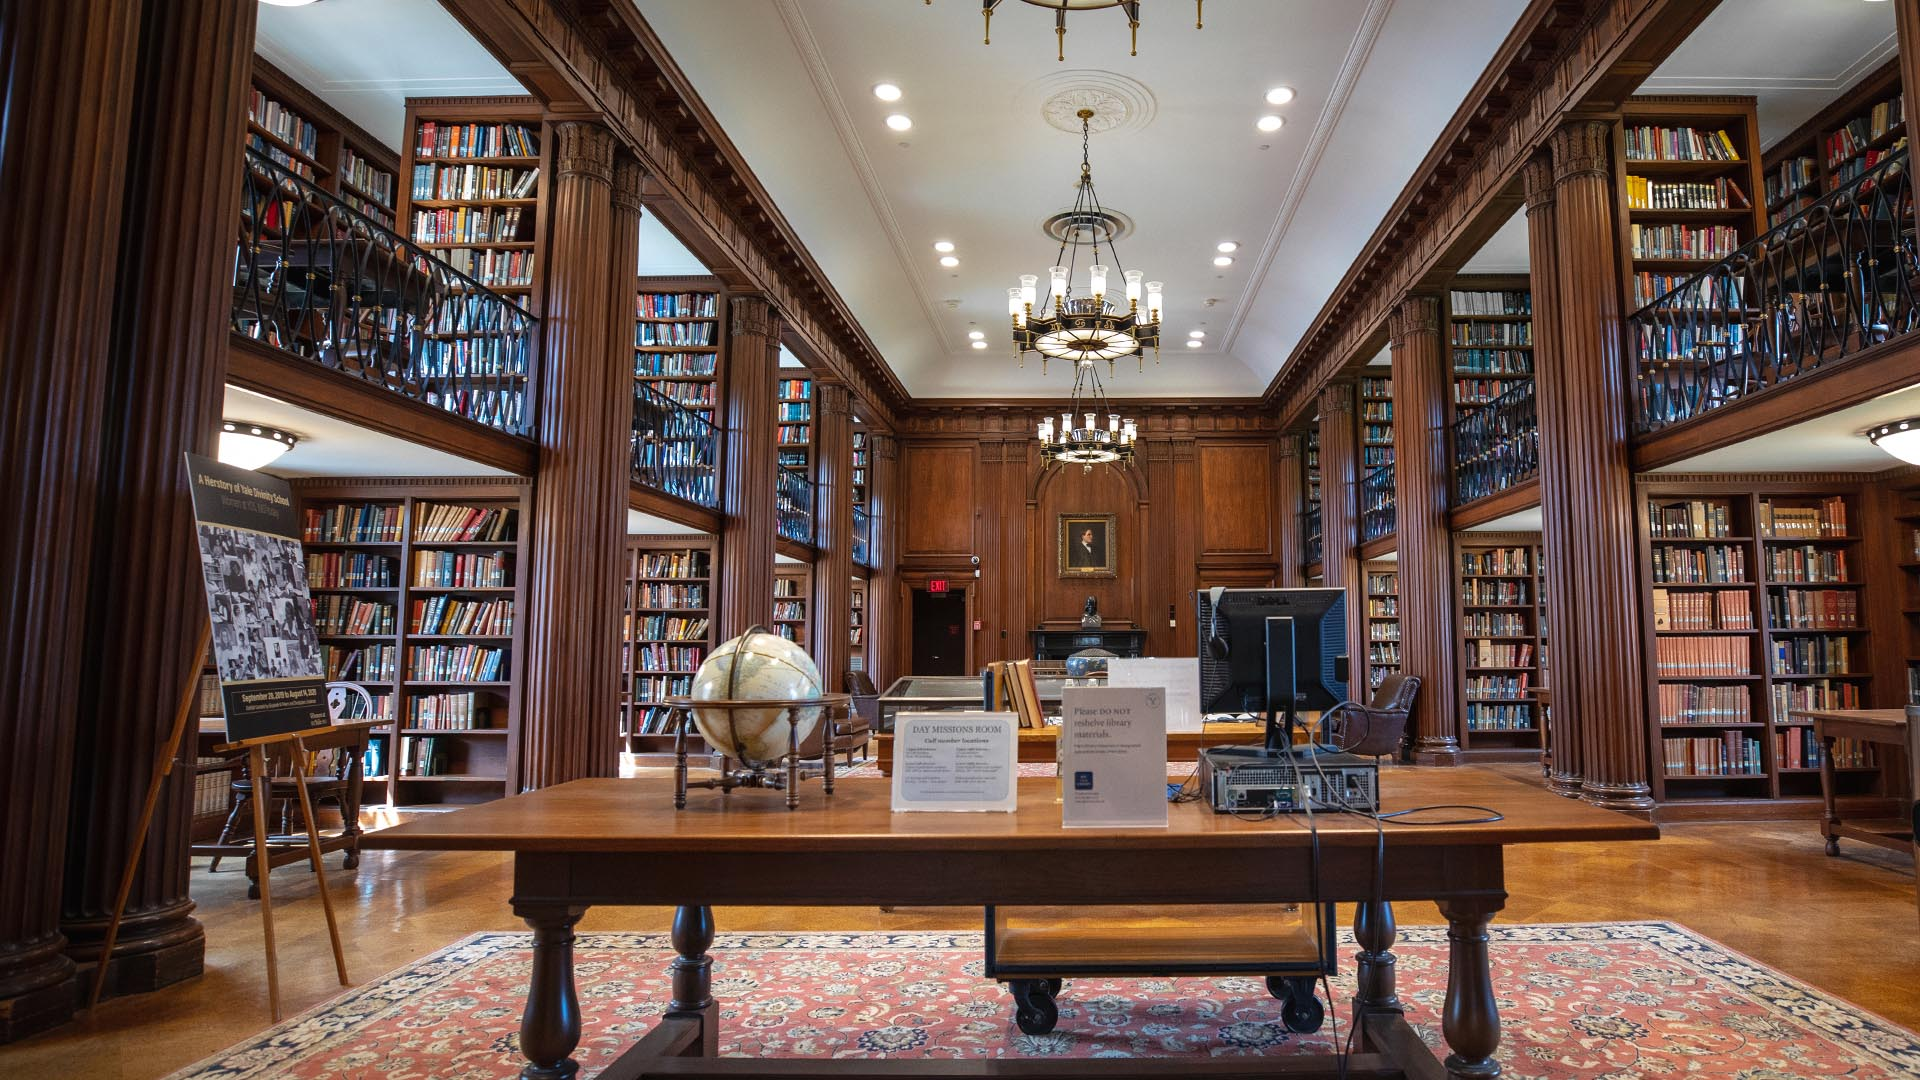 A photograph of the inside of the Divinity Library.